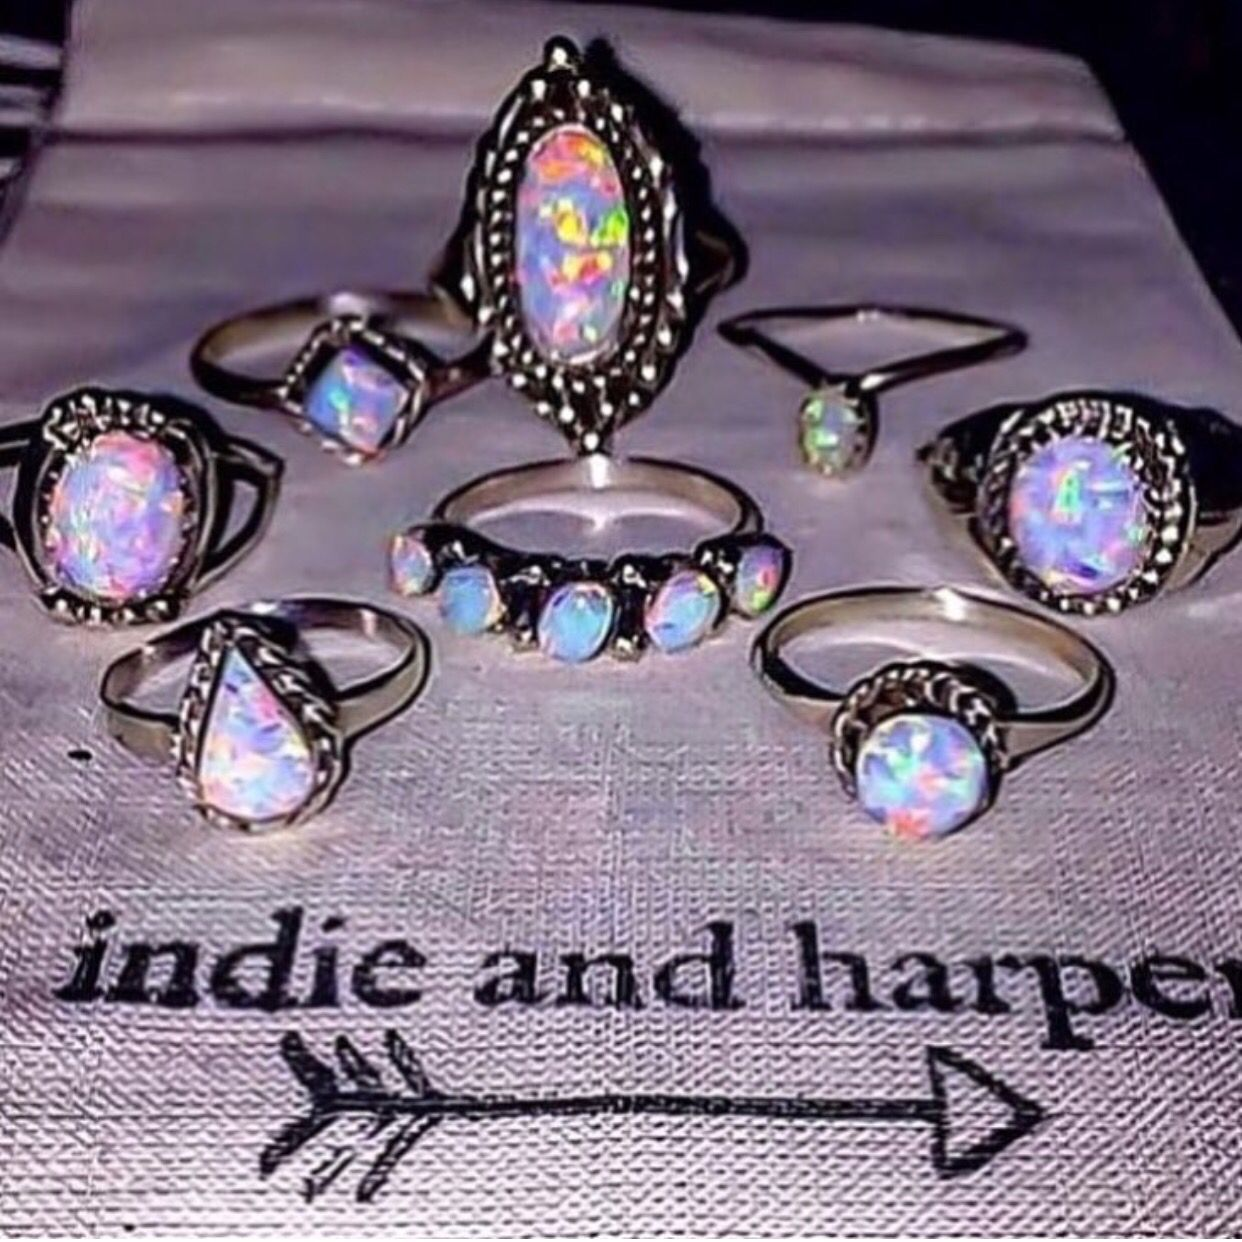 NAVAJO || Opals available in our 'Navajo' Collection NOW www.indieandharper.com